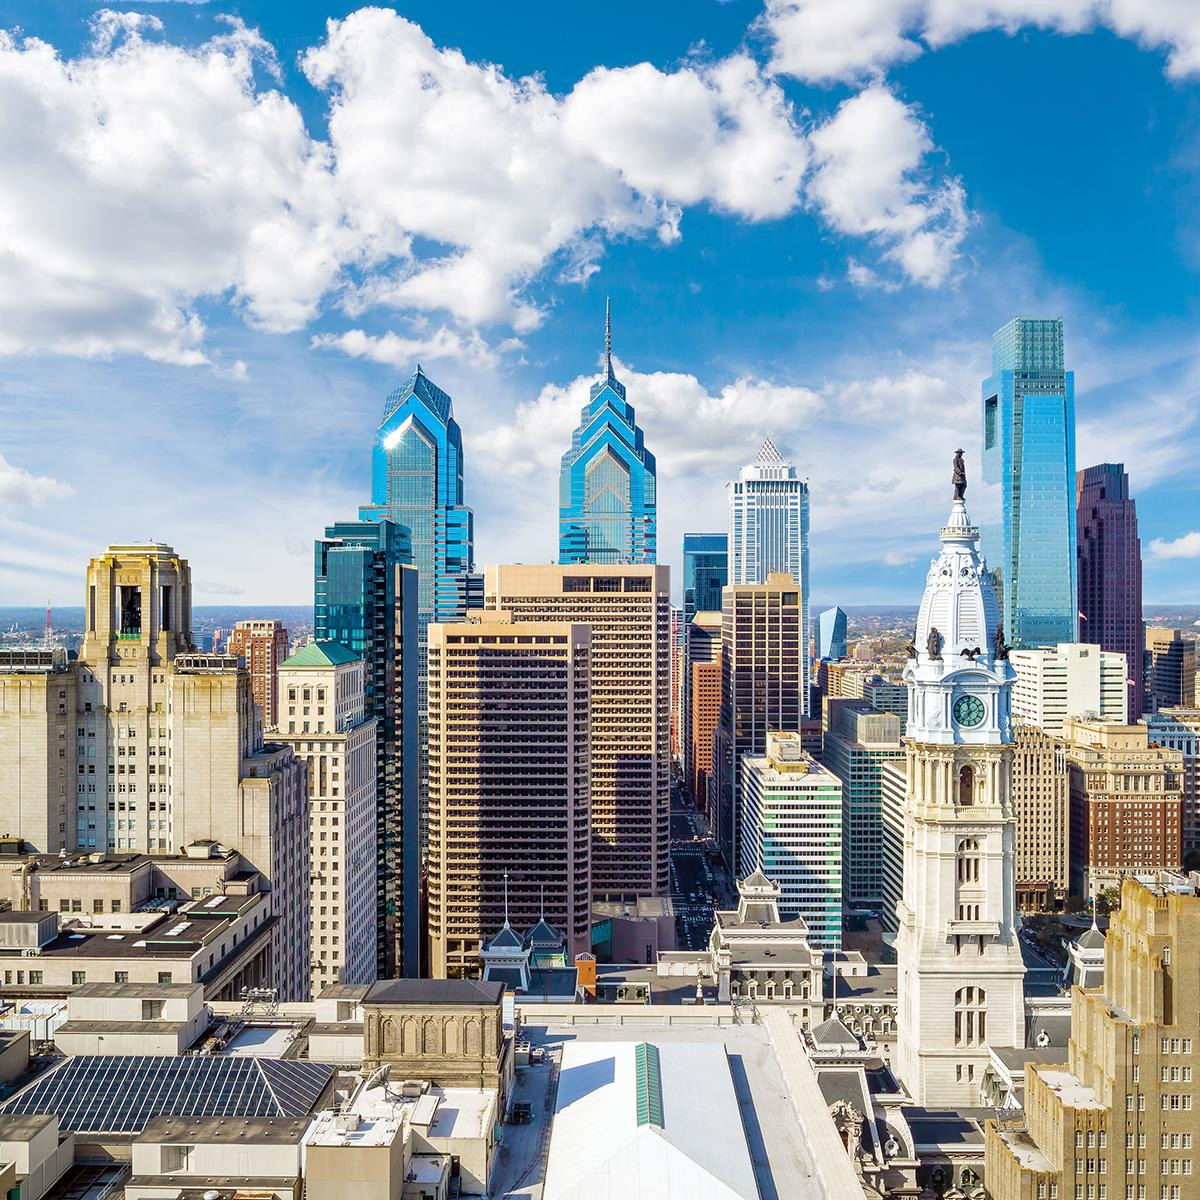 Skyline of Philadelphia in Pennsylvania